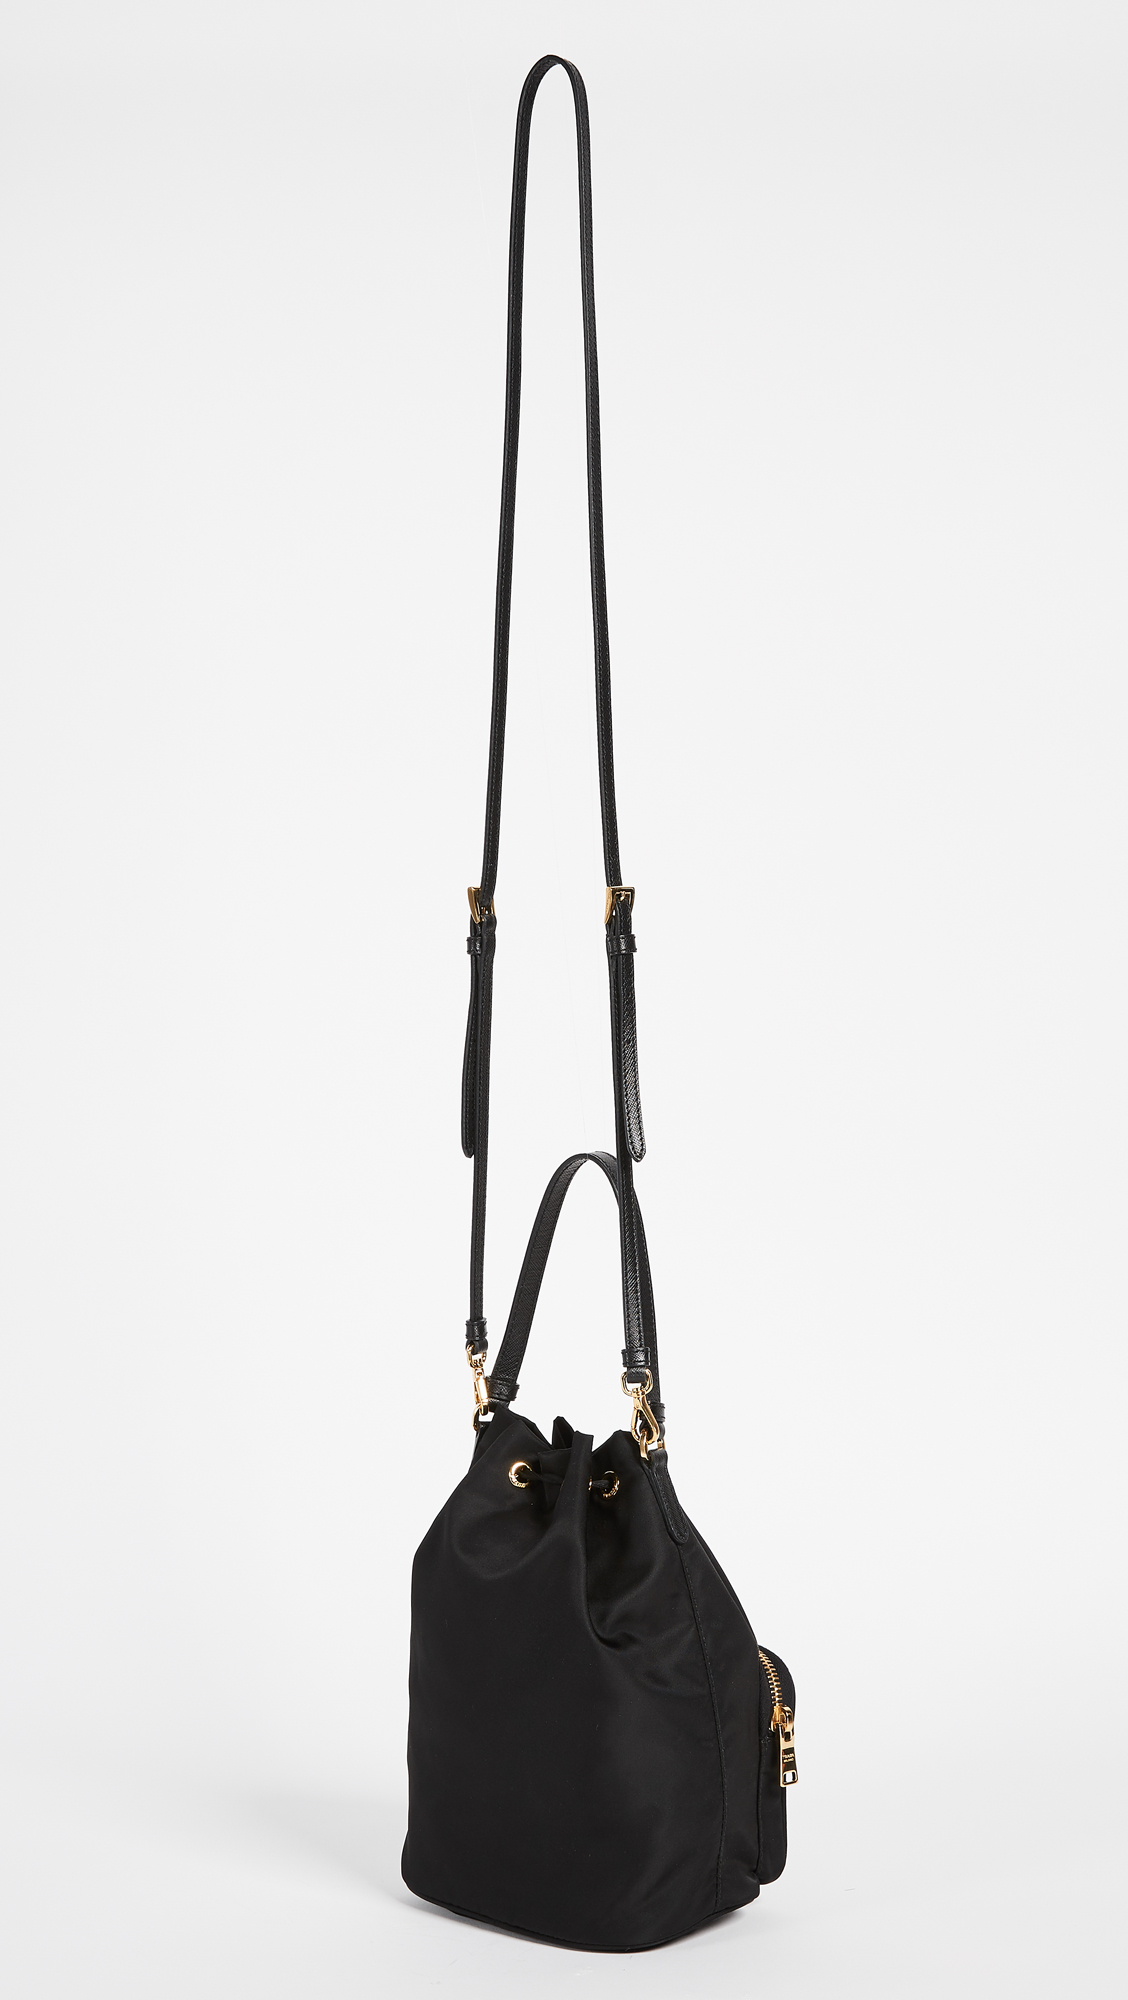 b6be44ace7bc ... spain what goes around comes around prada tessuto bucket shoulder bag  previously owned shopbop 8d373 1289b